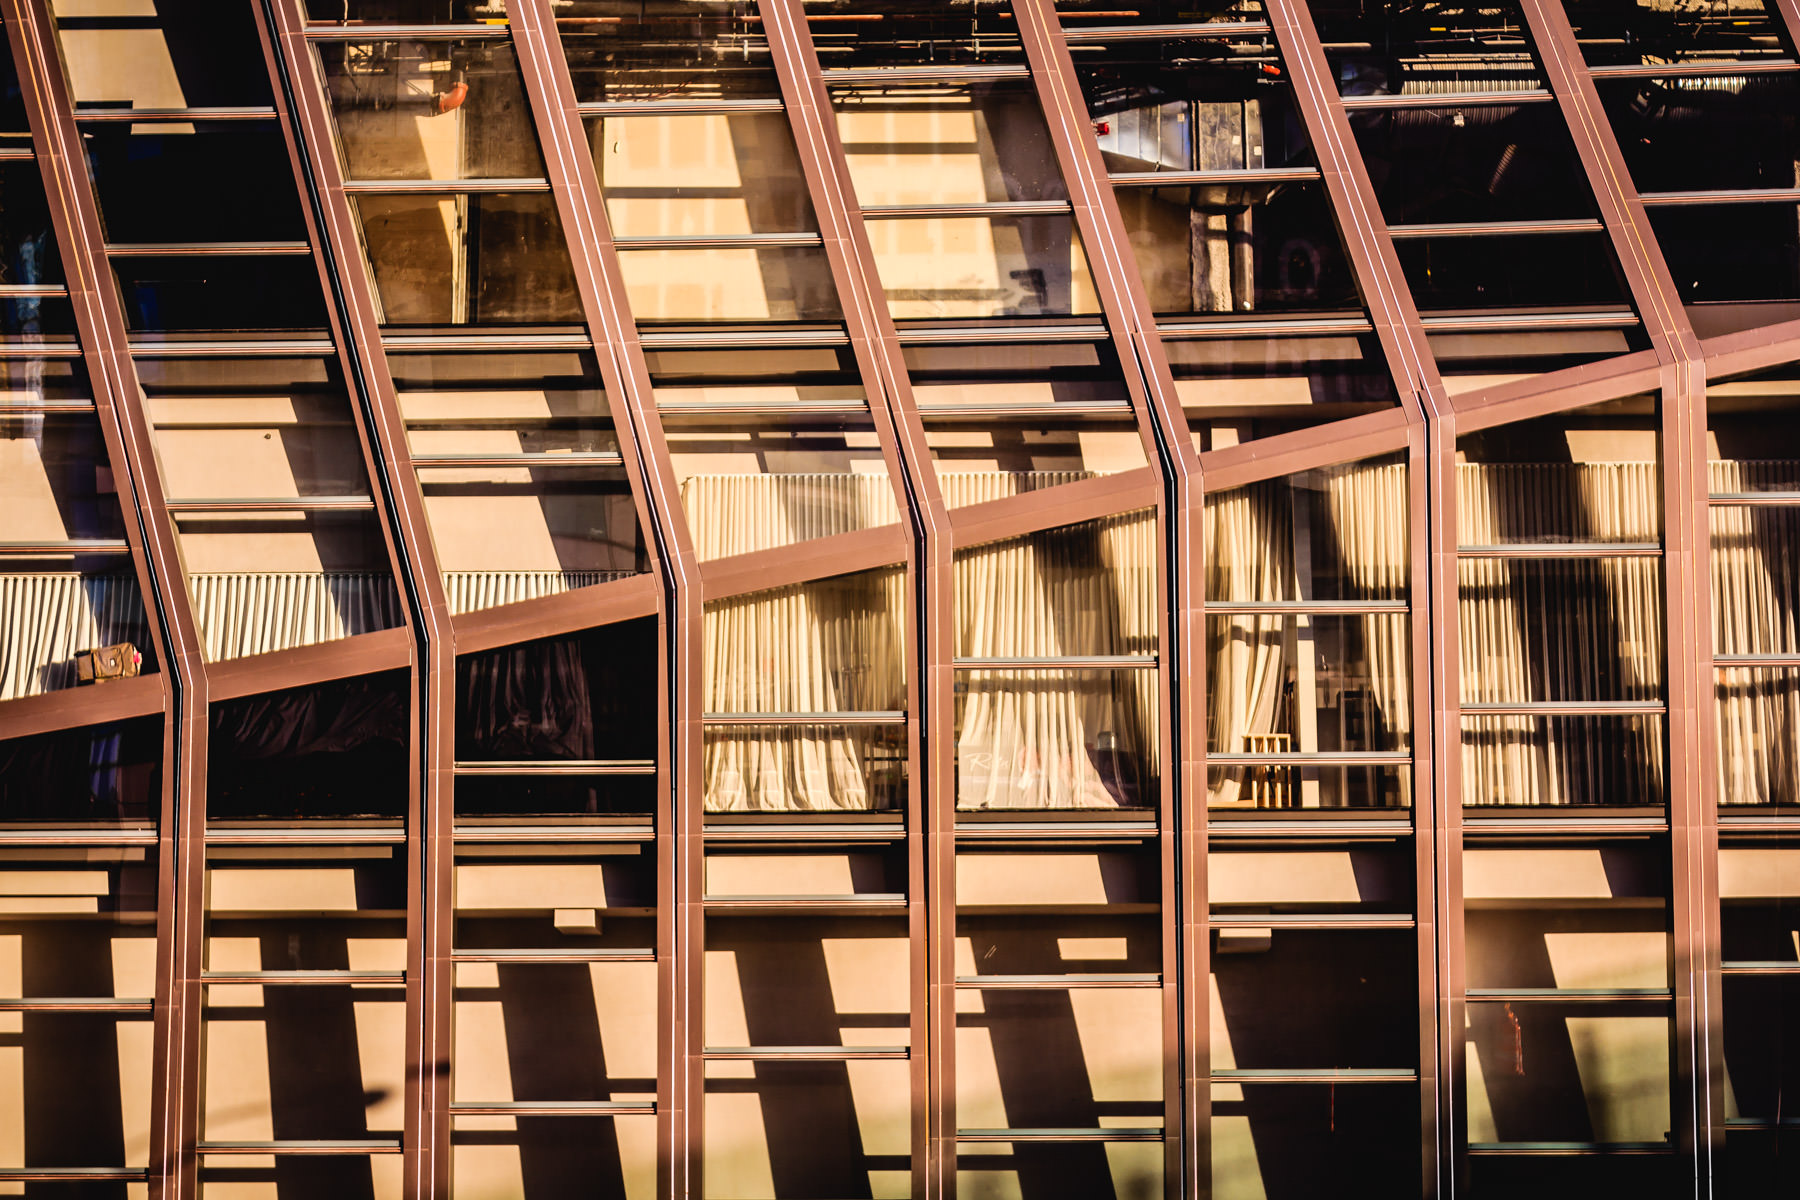 Detail of the large lobby windows at the Cosmopolitan of Las Vegas.